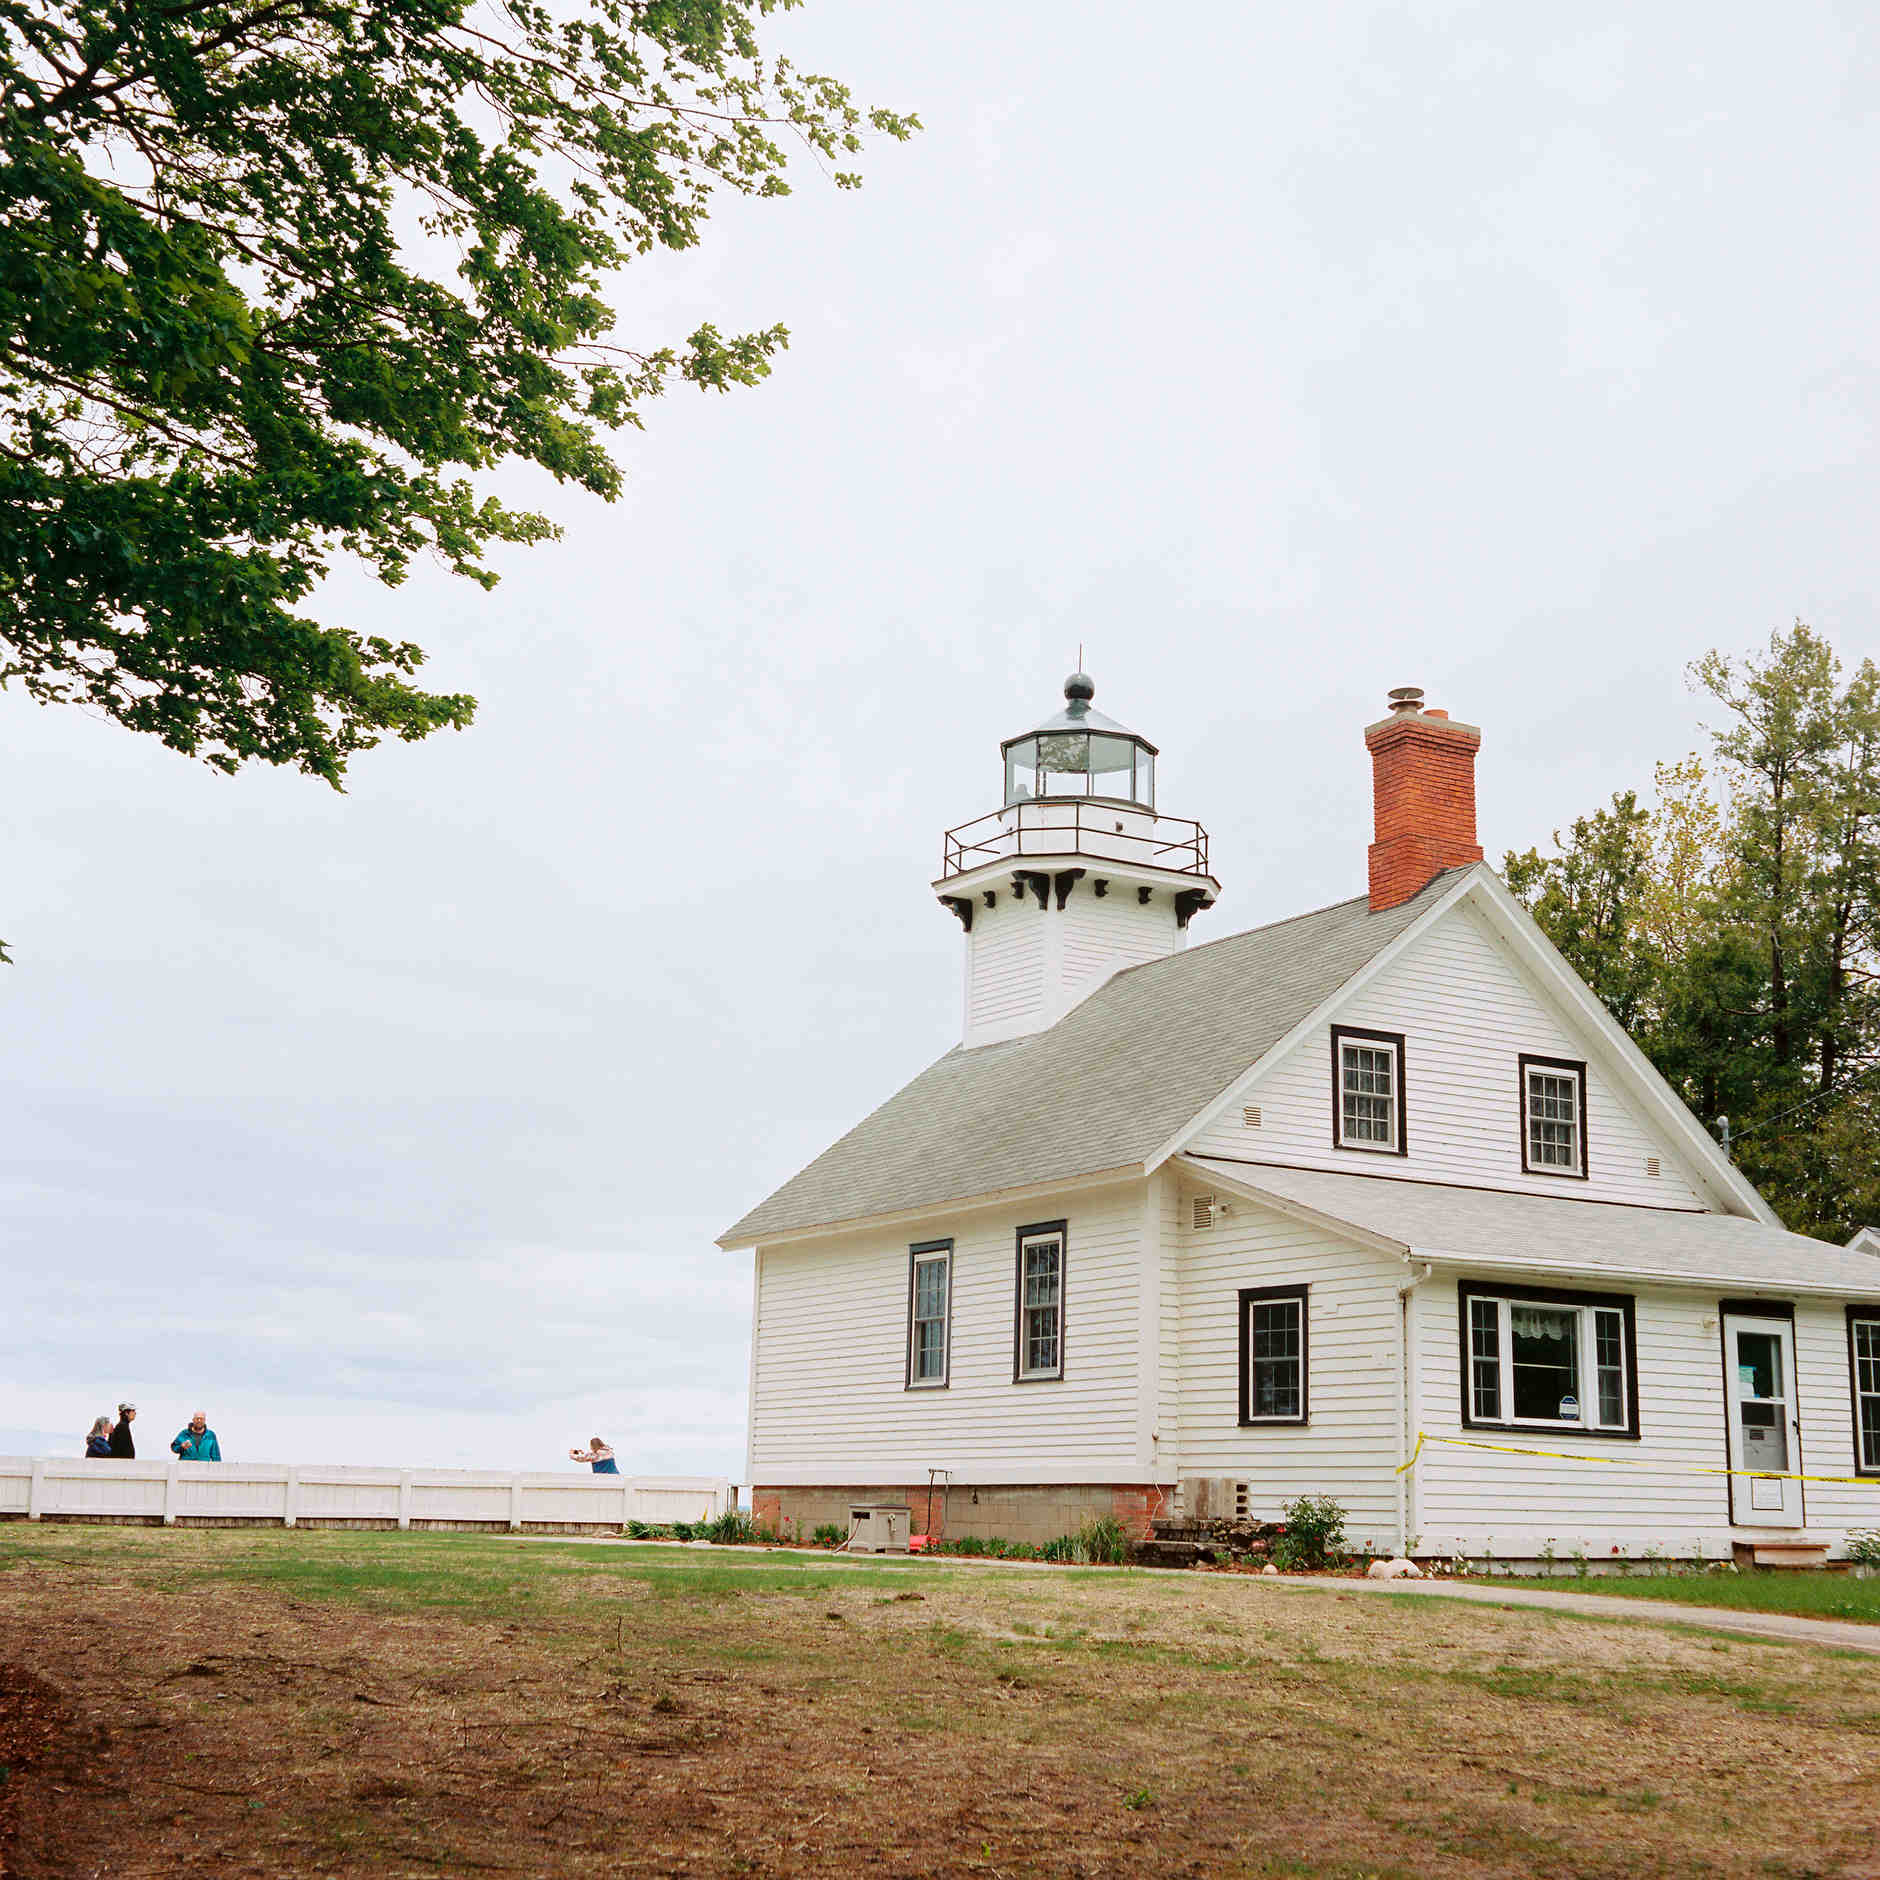 The Mission Point Lighthouse is pictured near Traverse City, Michigan on Thursday, June 13, 2019. (Photo by James Brosher)